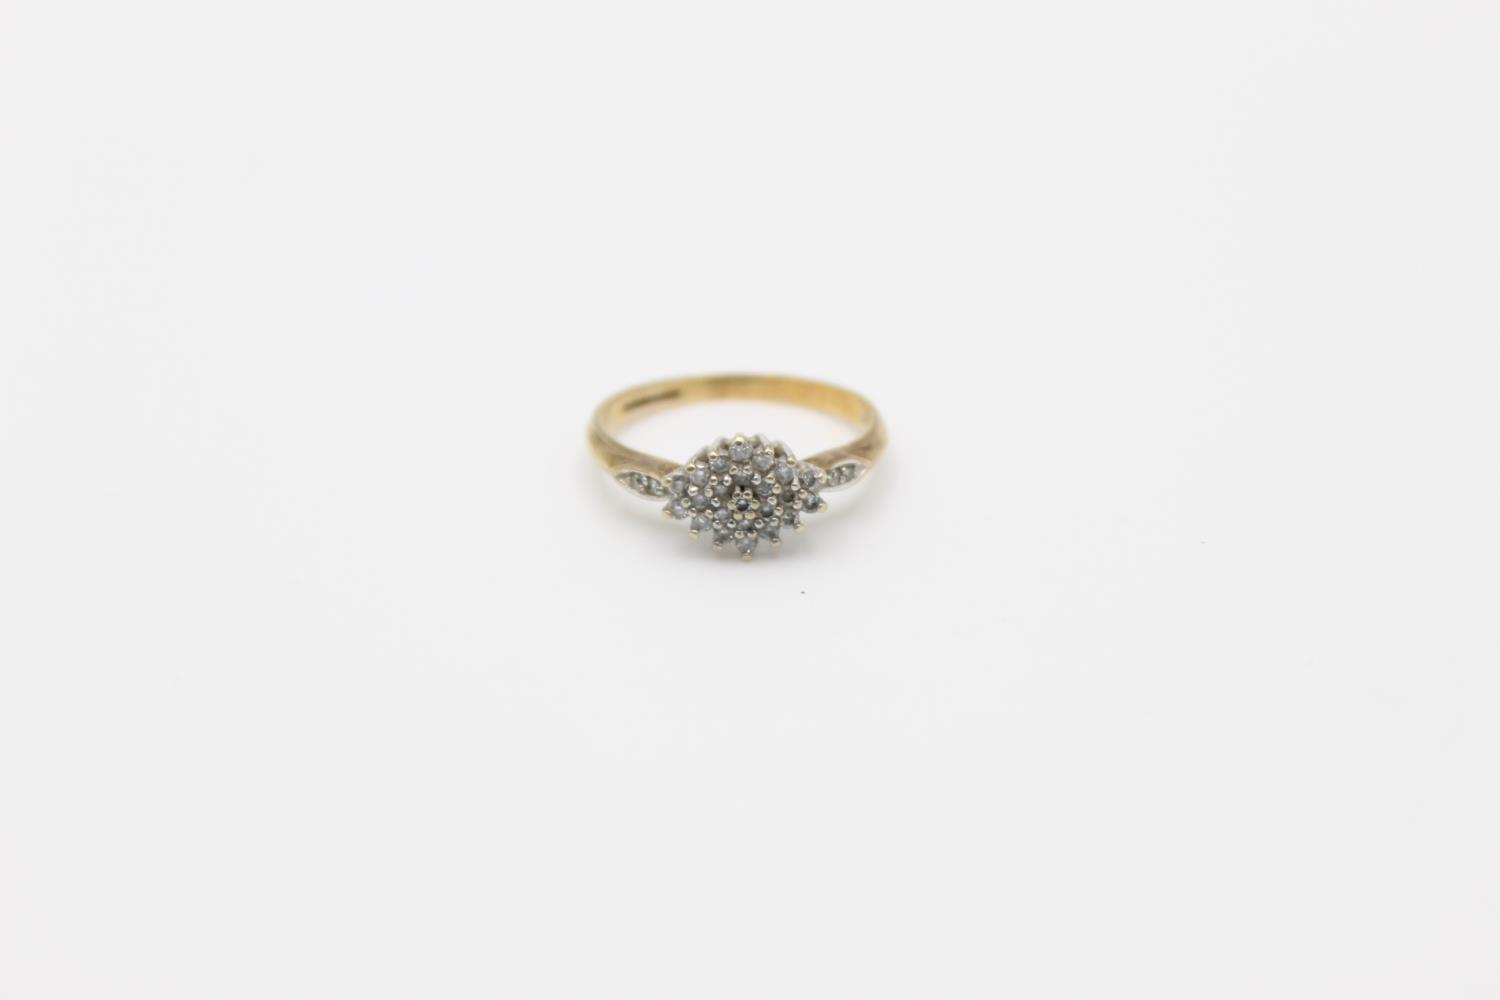 Vintage 9ct Gold diamond cluster ring 2.5g Size p